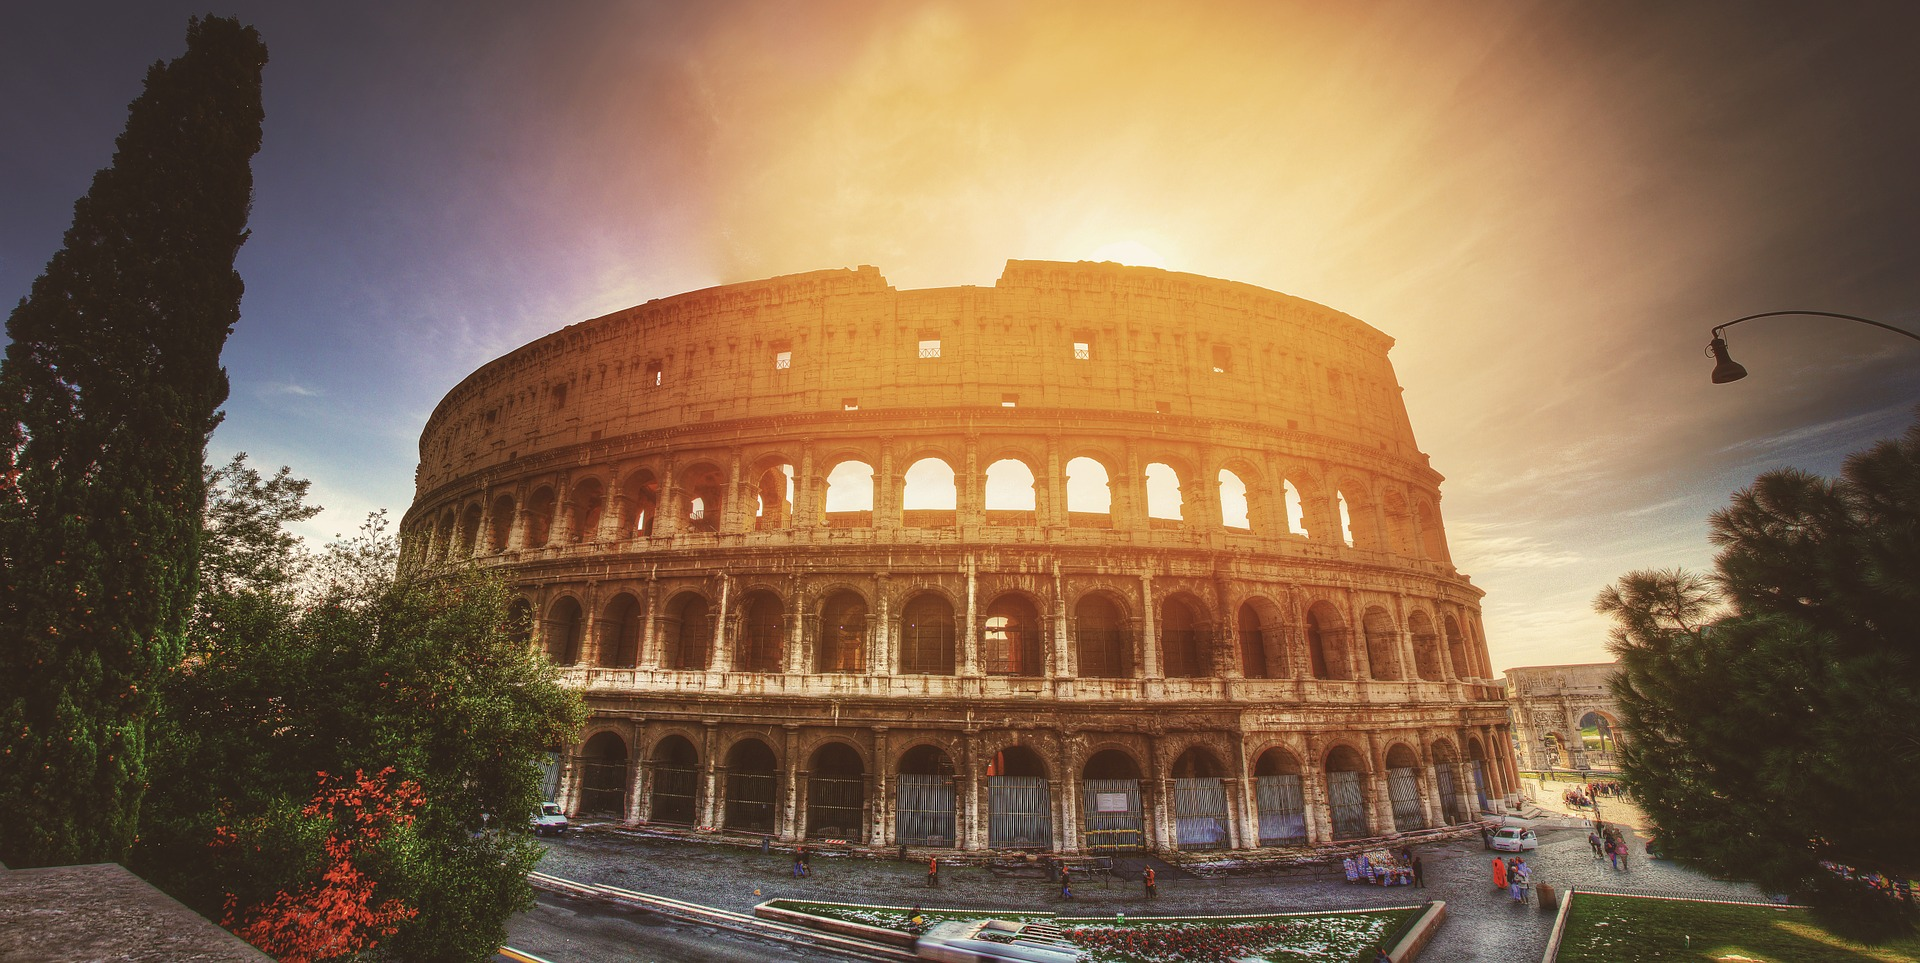 Beautiful Architecture of Colosseum Rome, Italy